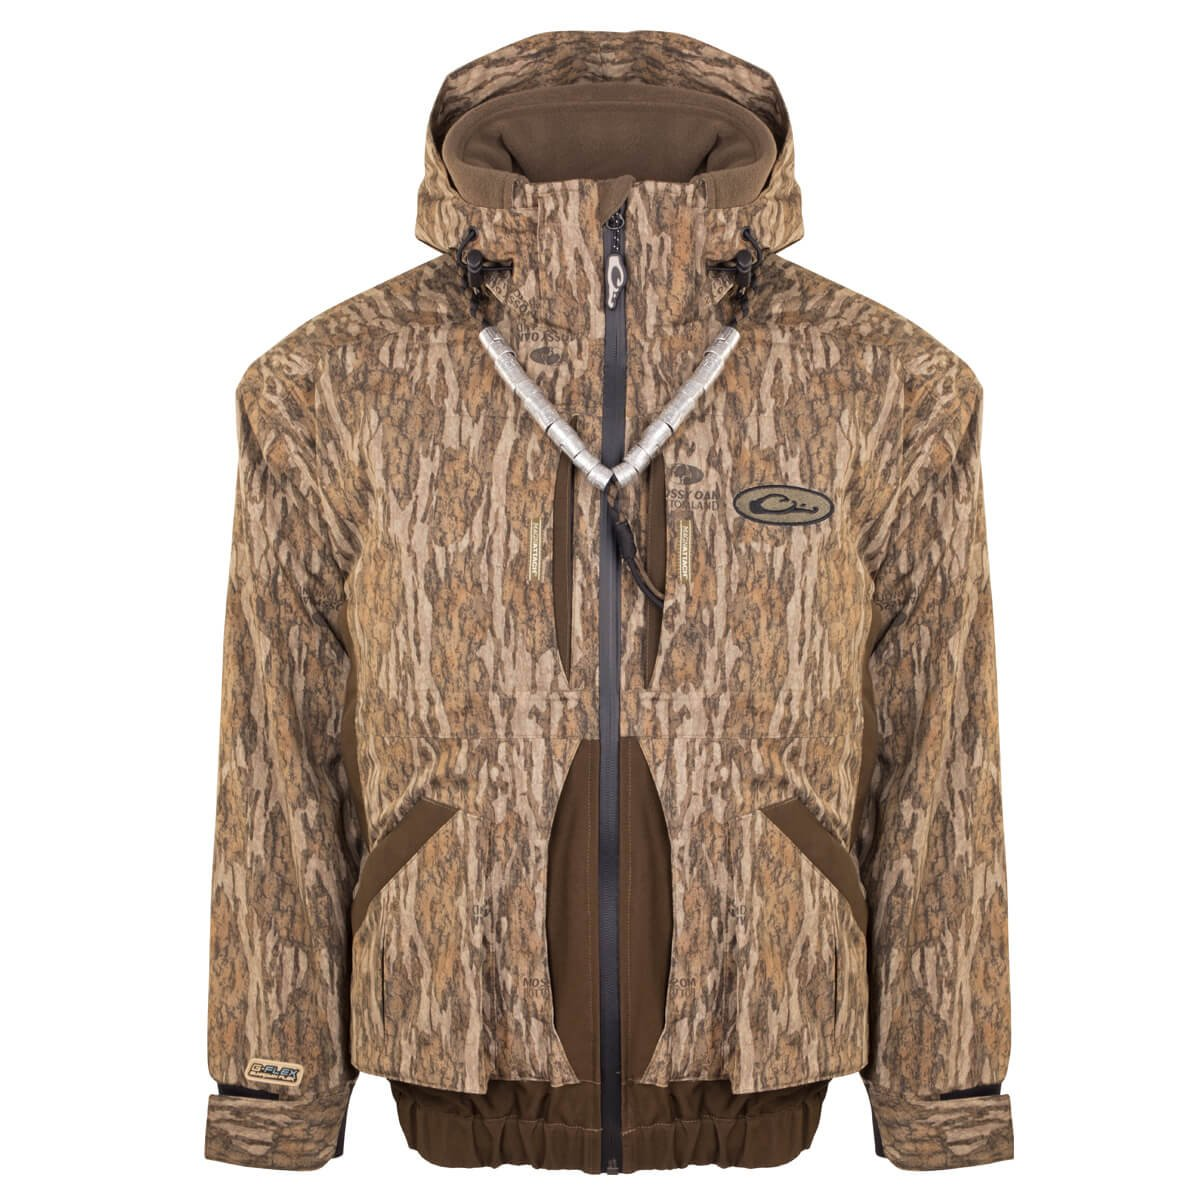 Drake Guardian Flex 3 in 1 Systems Coat, Color: Mossy Oak Bottomland, Size: X-Large (DW7120-006-4) by Drake (Image #1)